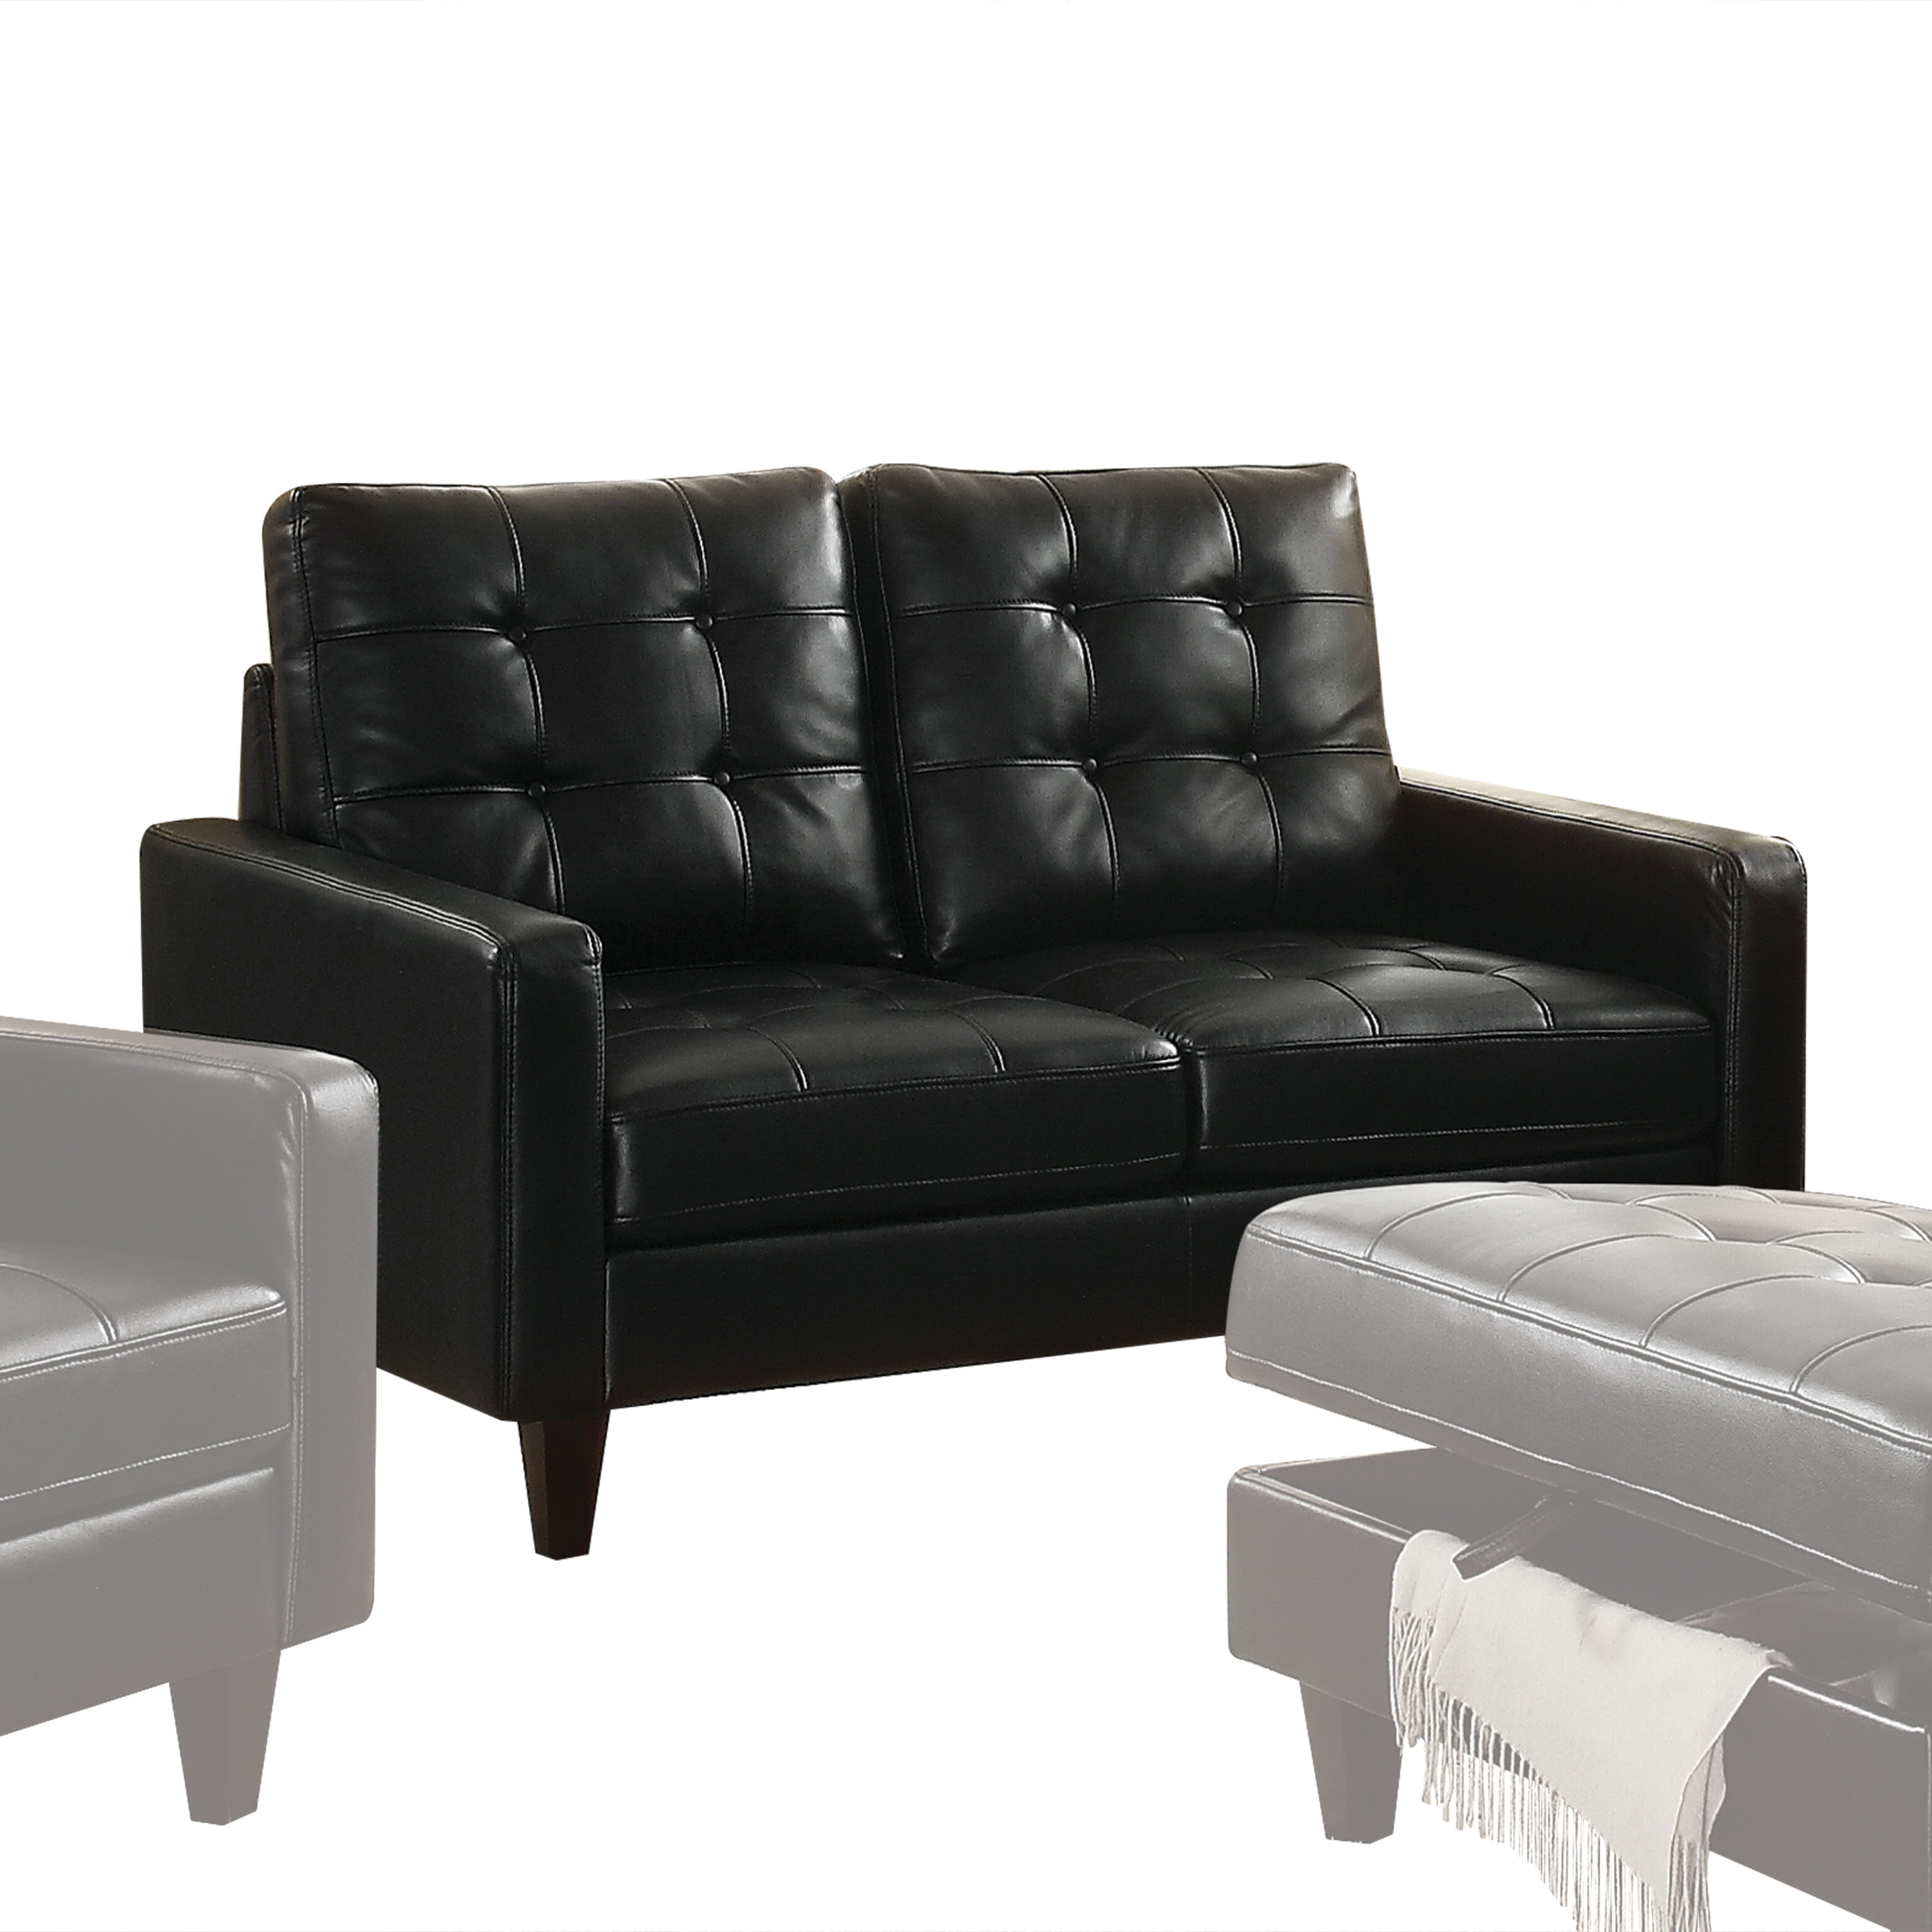 Acme Adley Memory Foam Loveseat in Black Leather-Gel